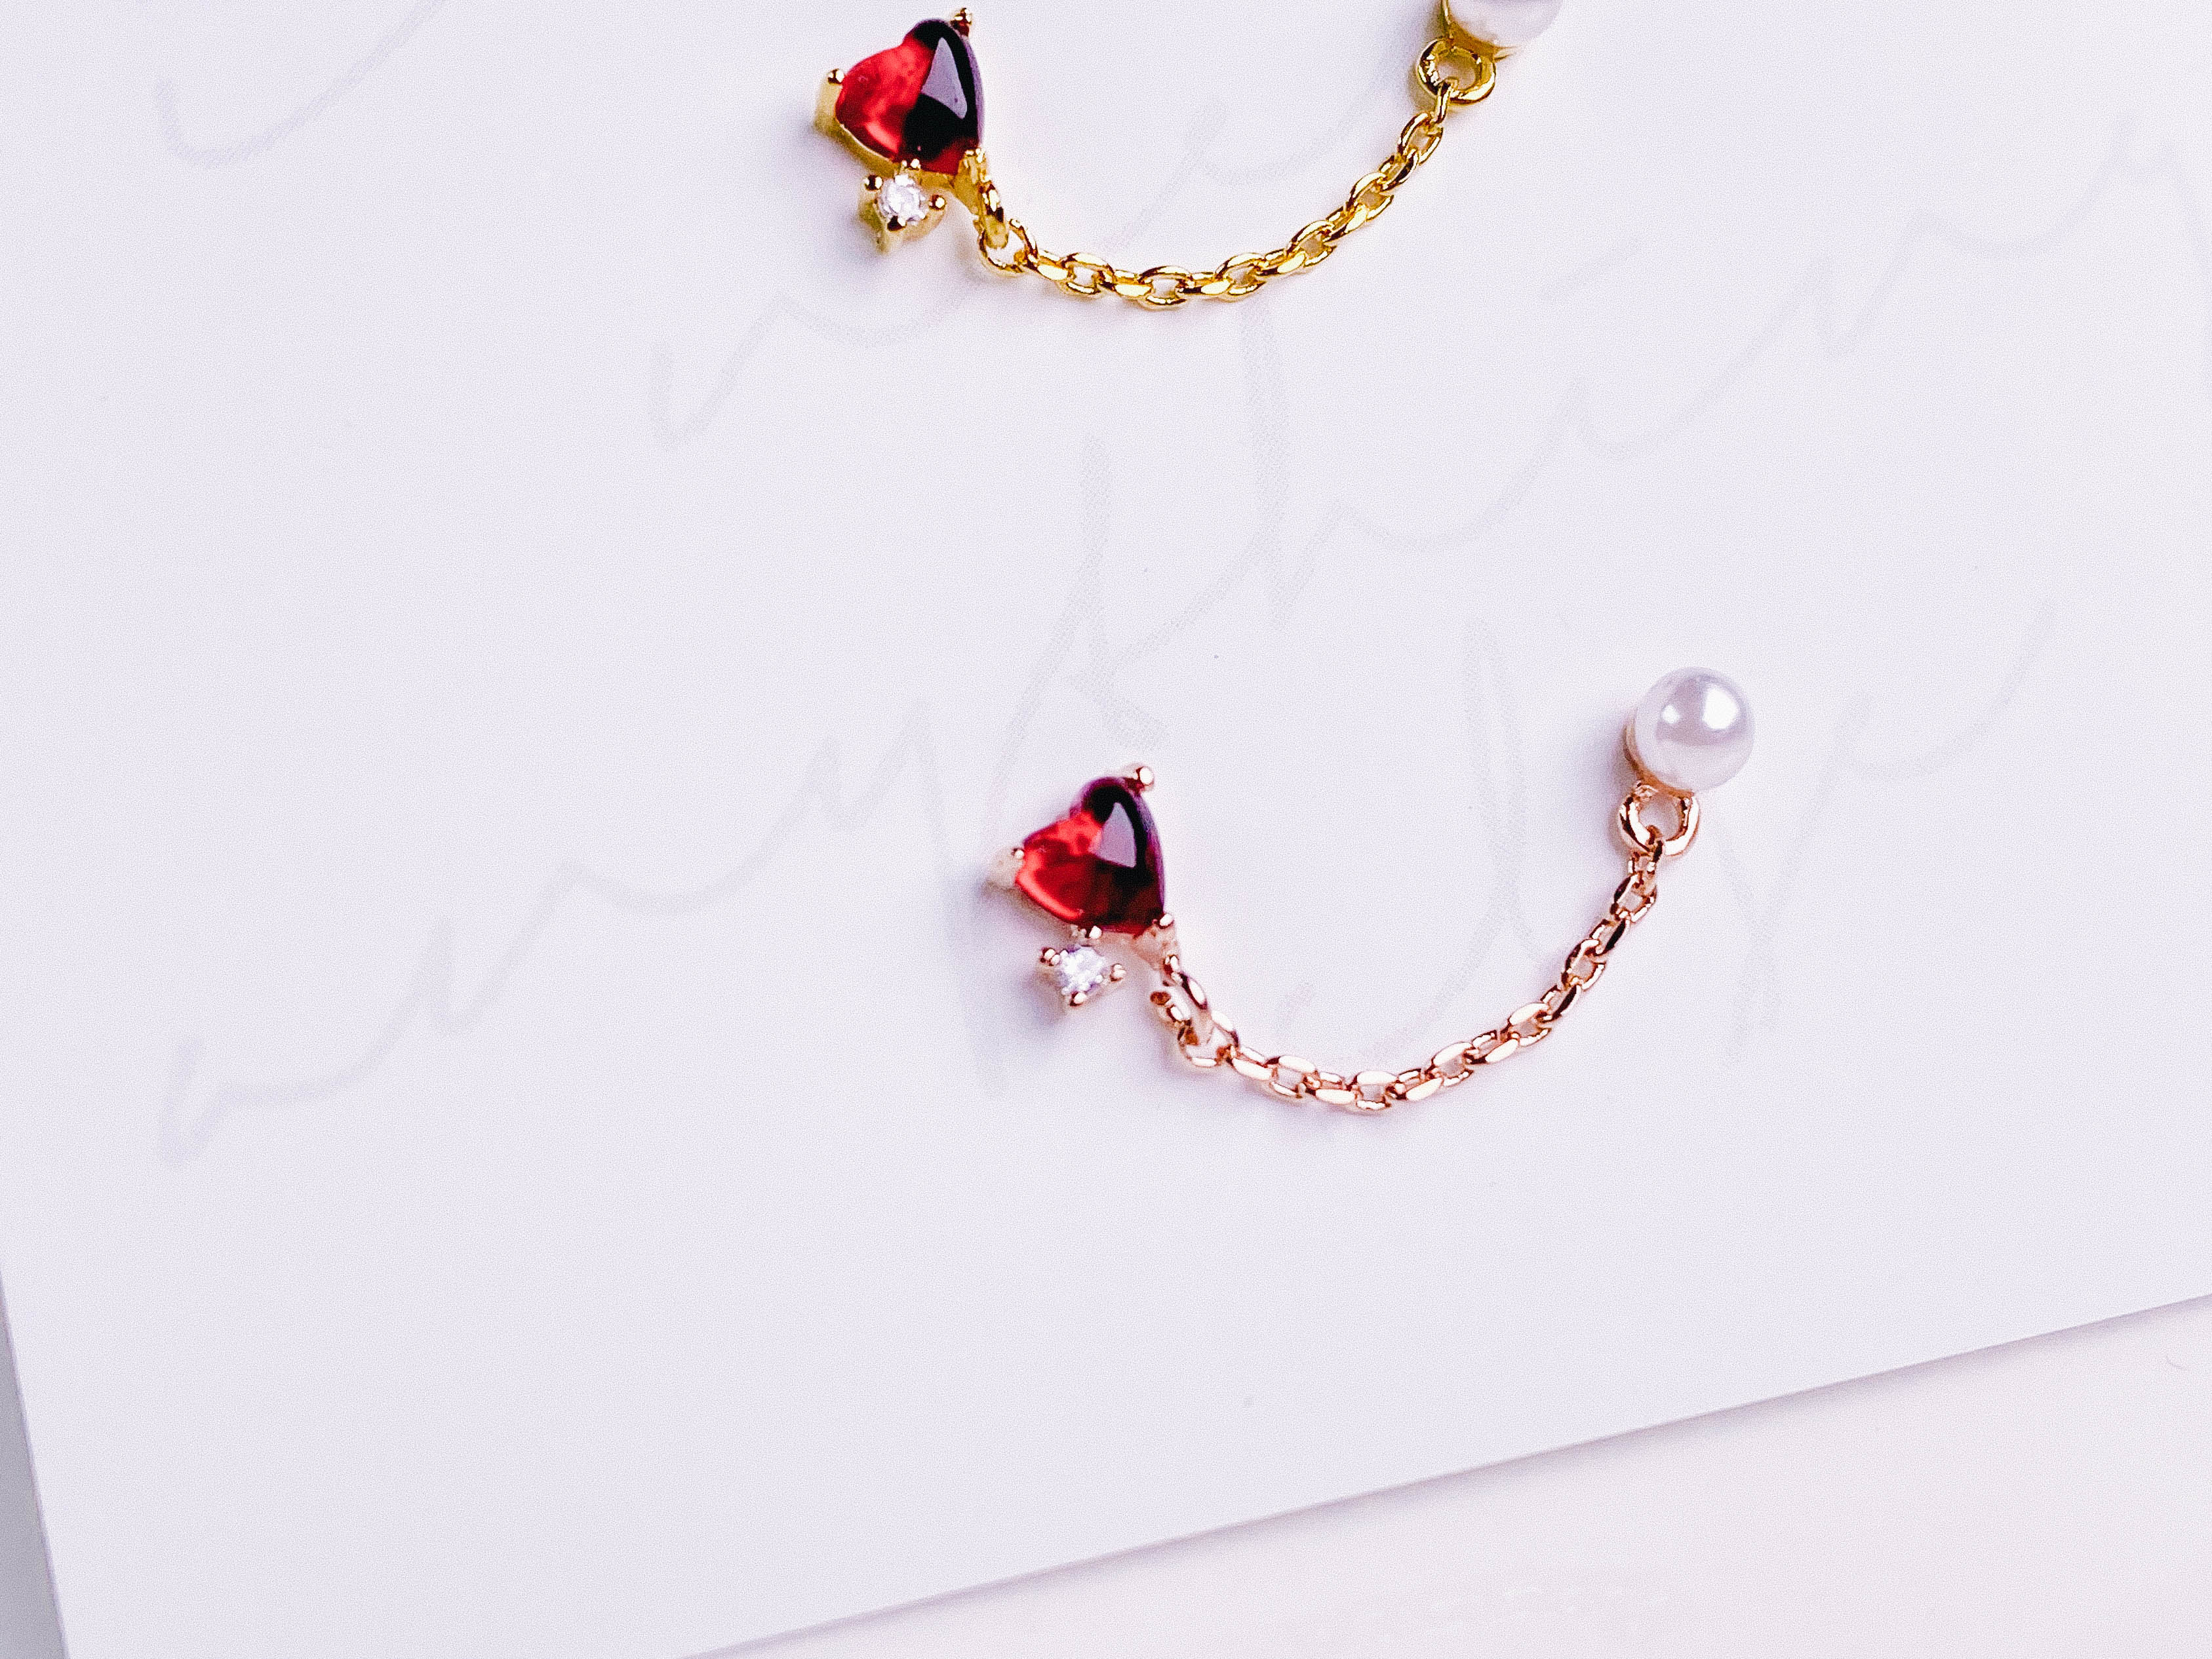 RED First Love (ピアス/ピアッシング) Piercing anything else